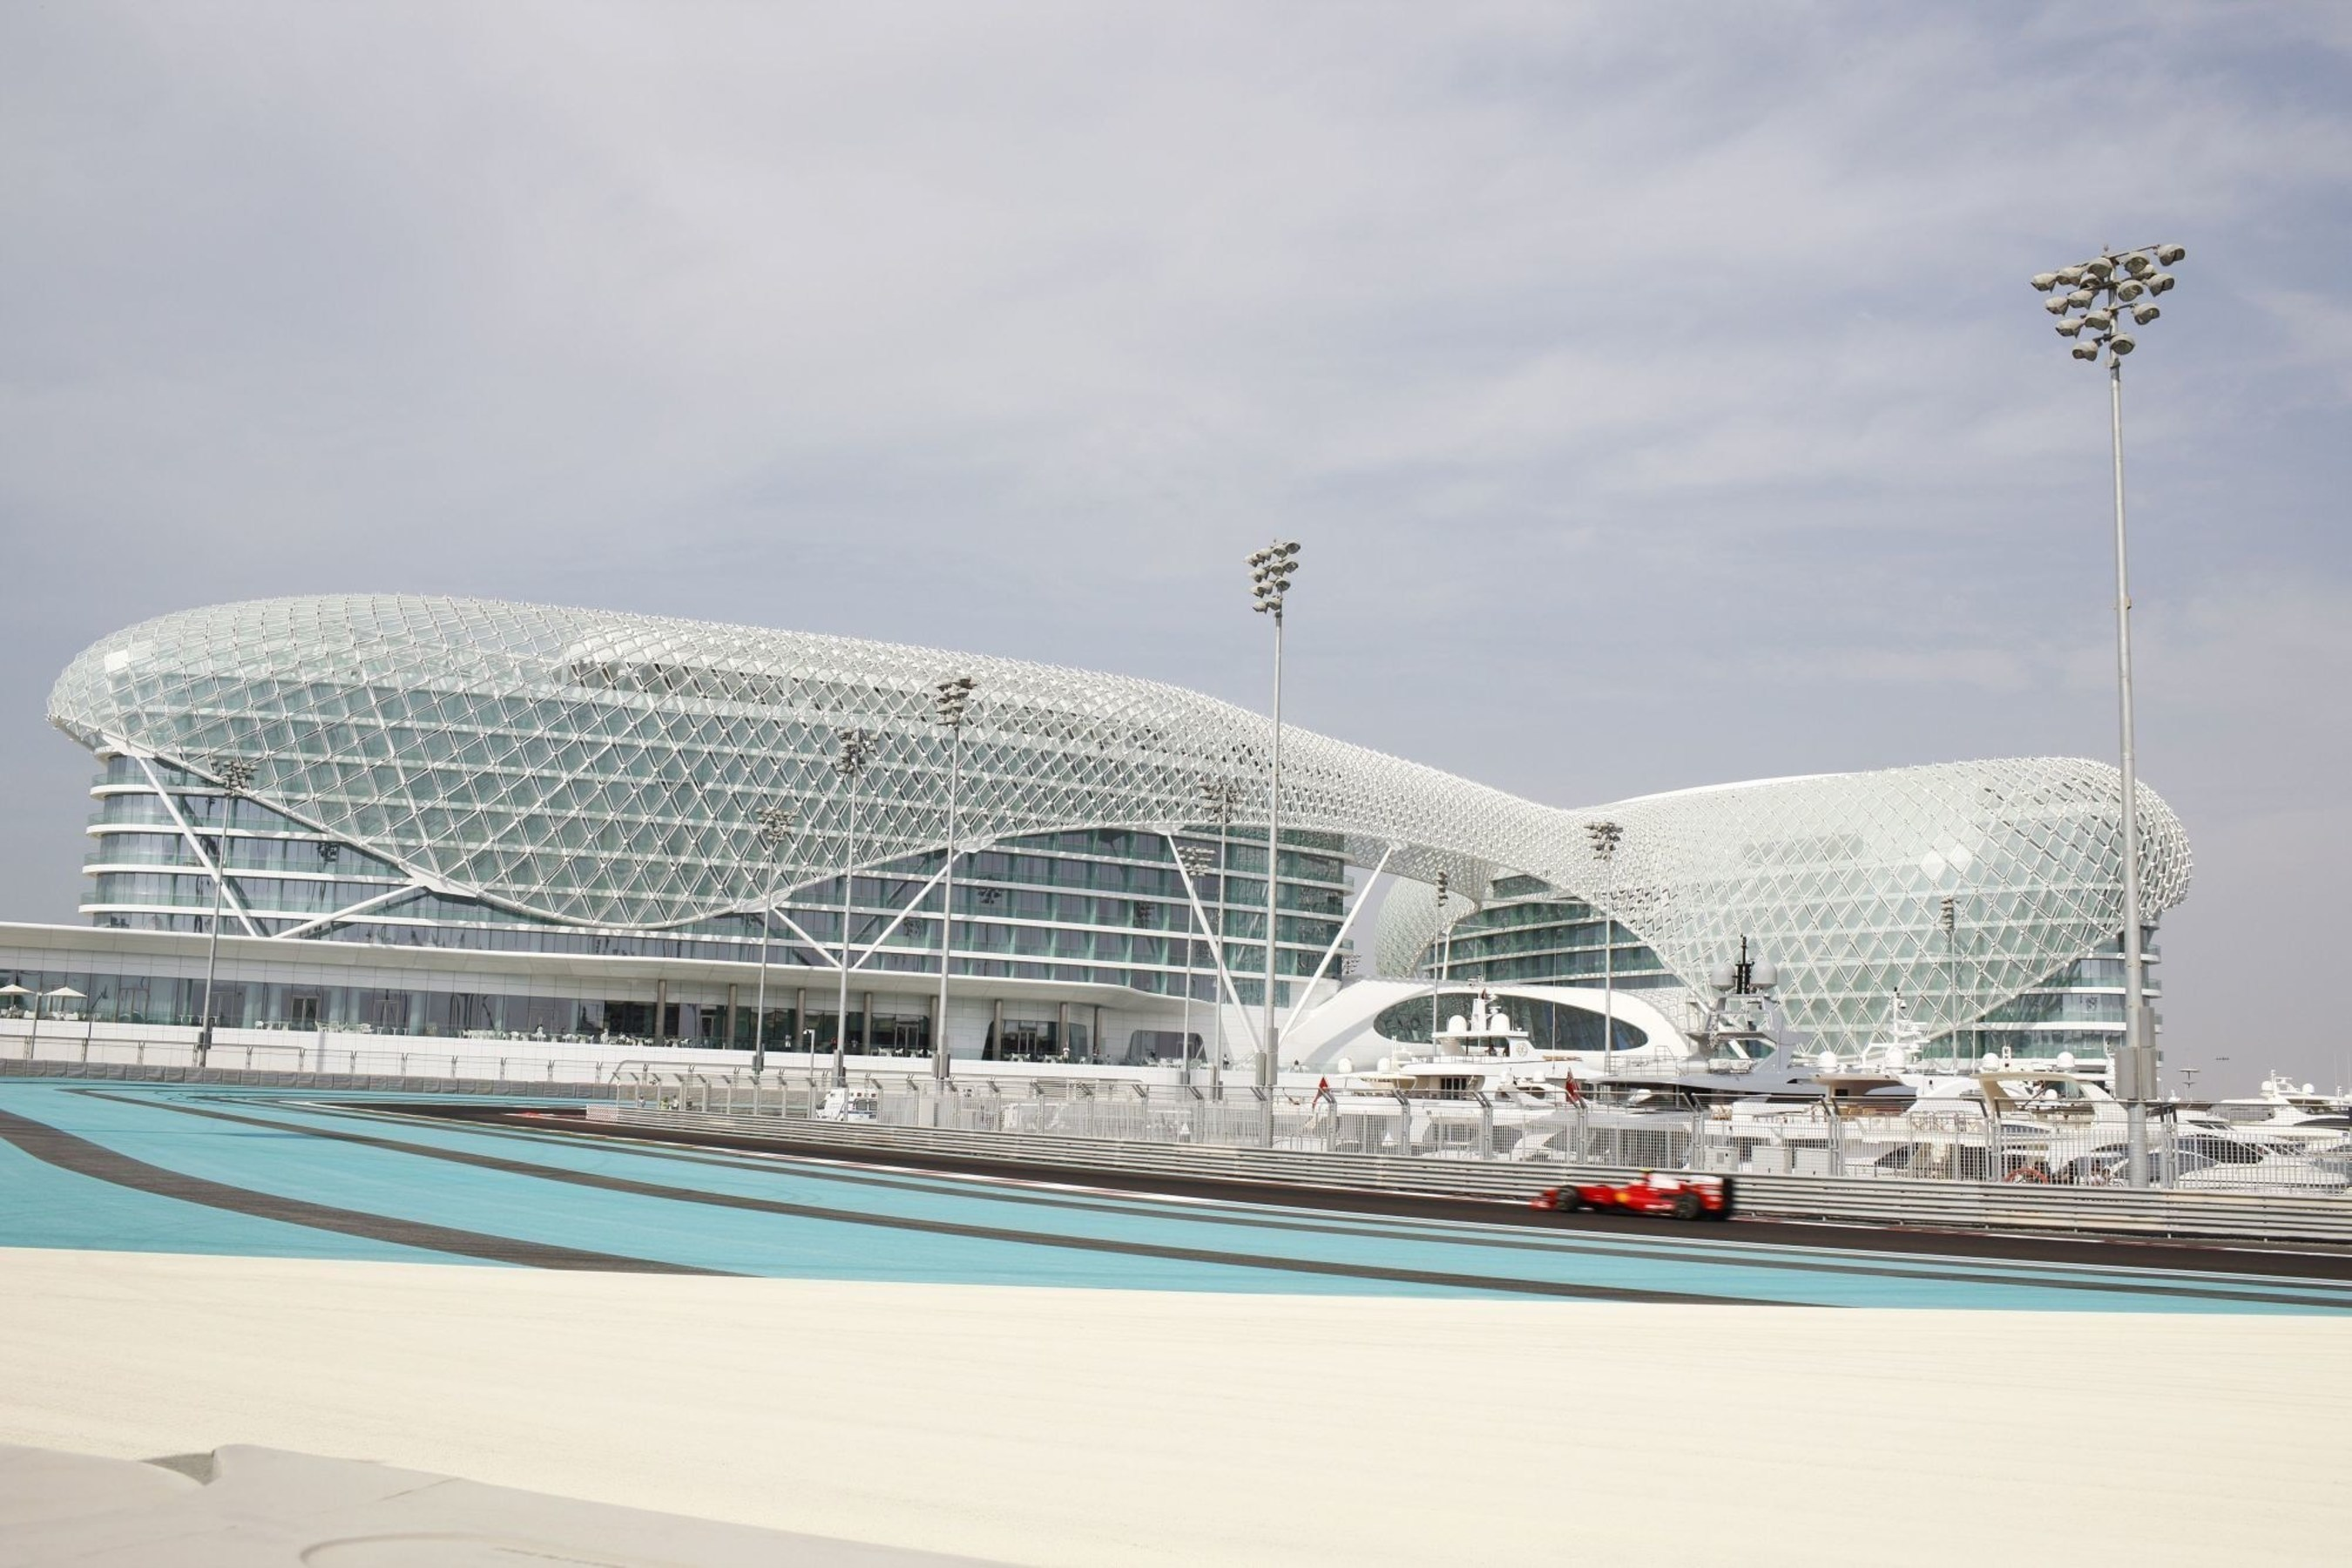 Blowout&Go appointed Official Hair & Makeup Partner of Yas Viceroy during the Race Weekend 2016 (PRNewsFoto/Blowout&Go)